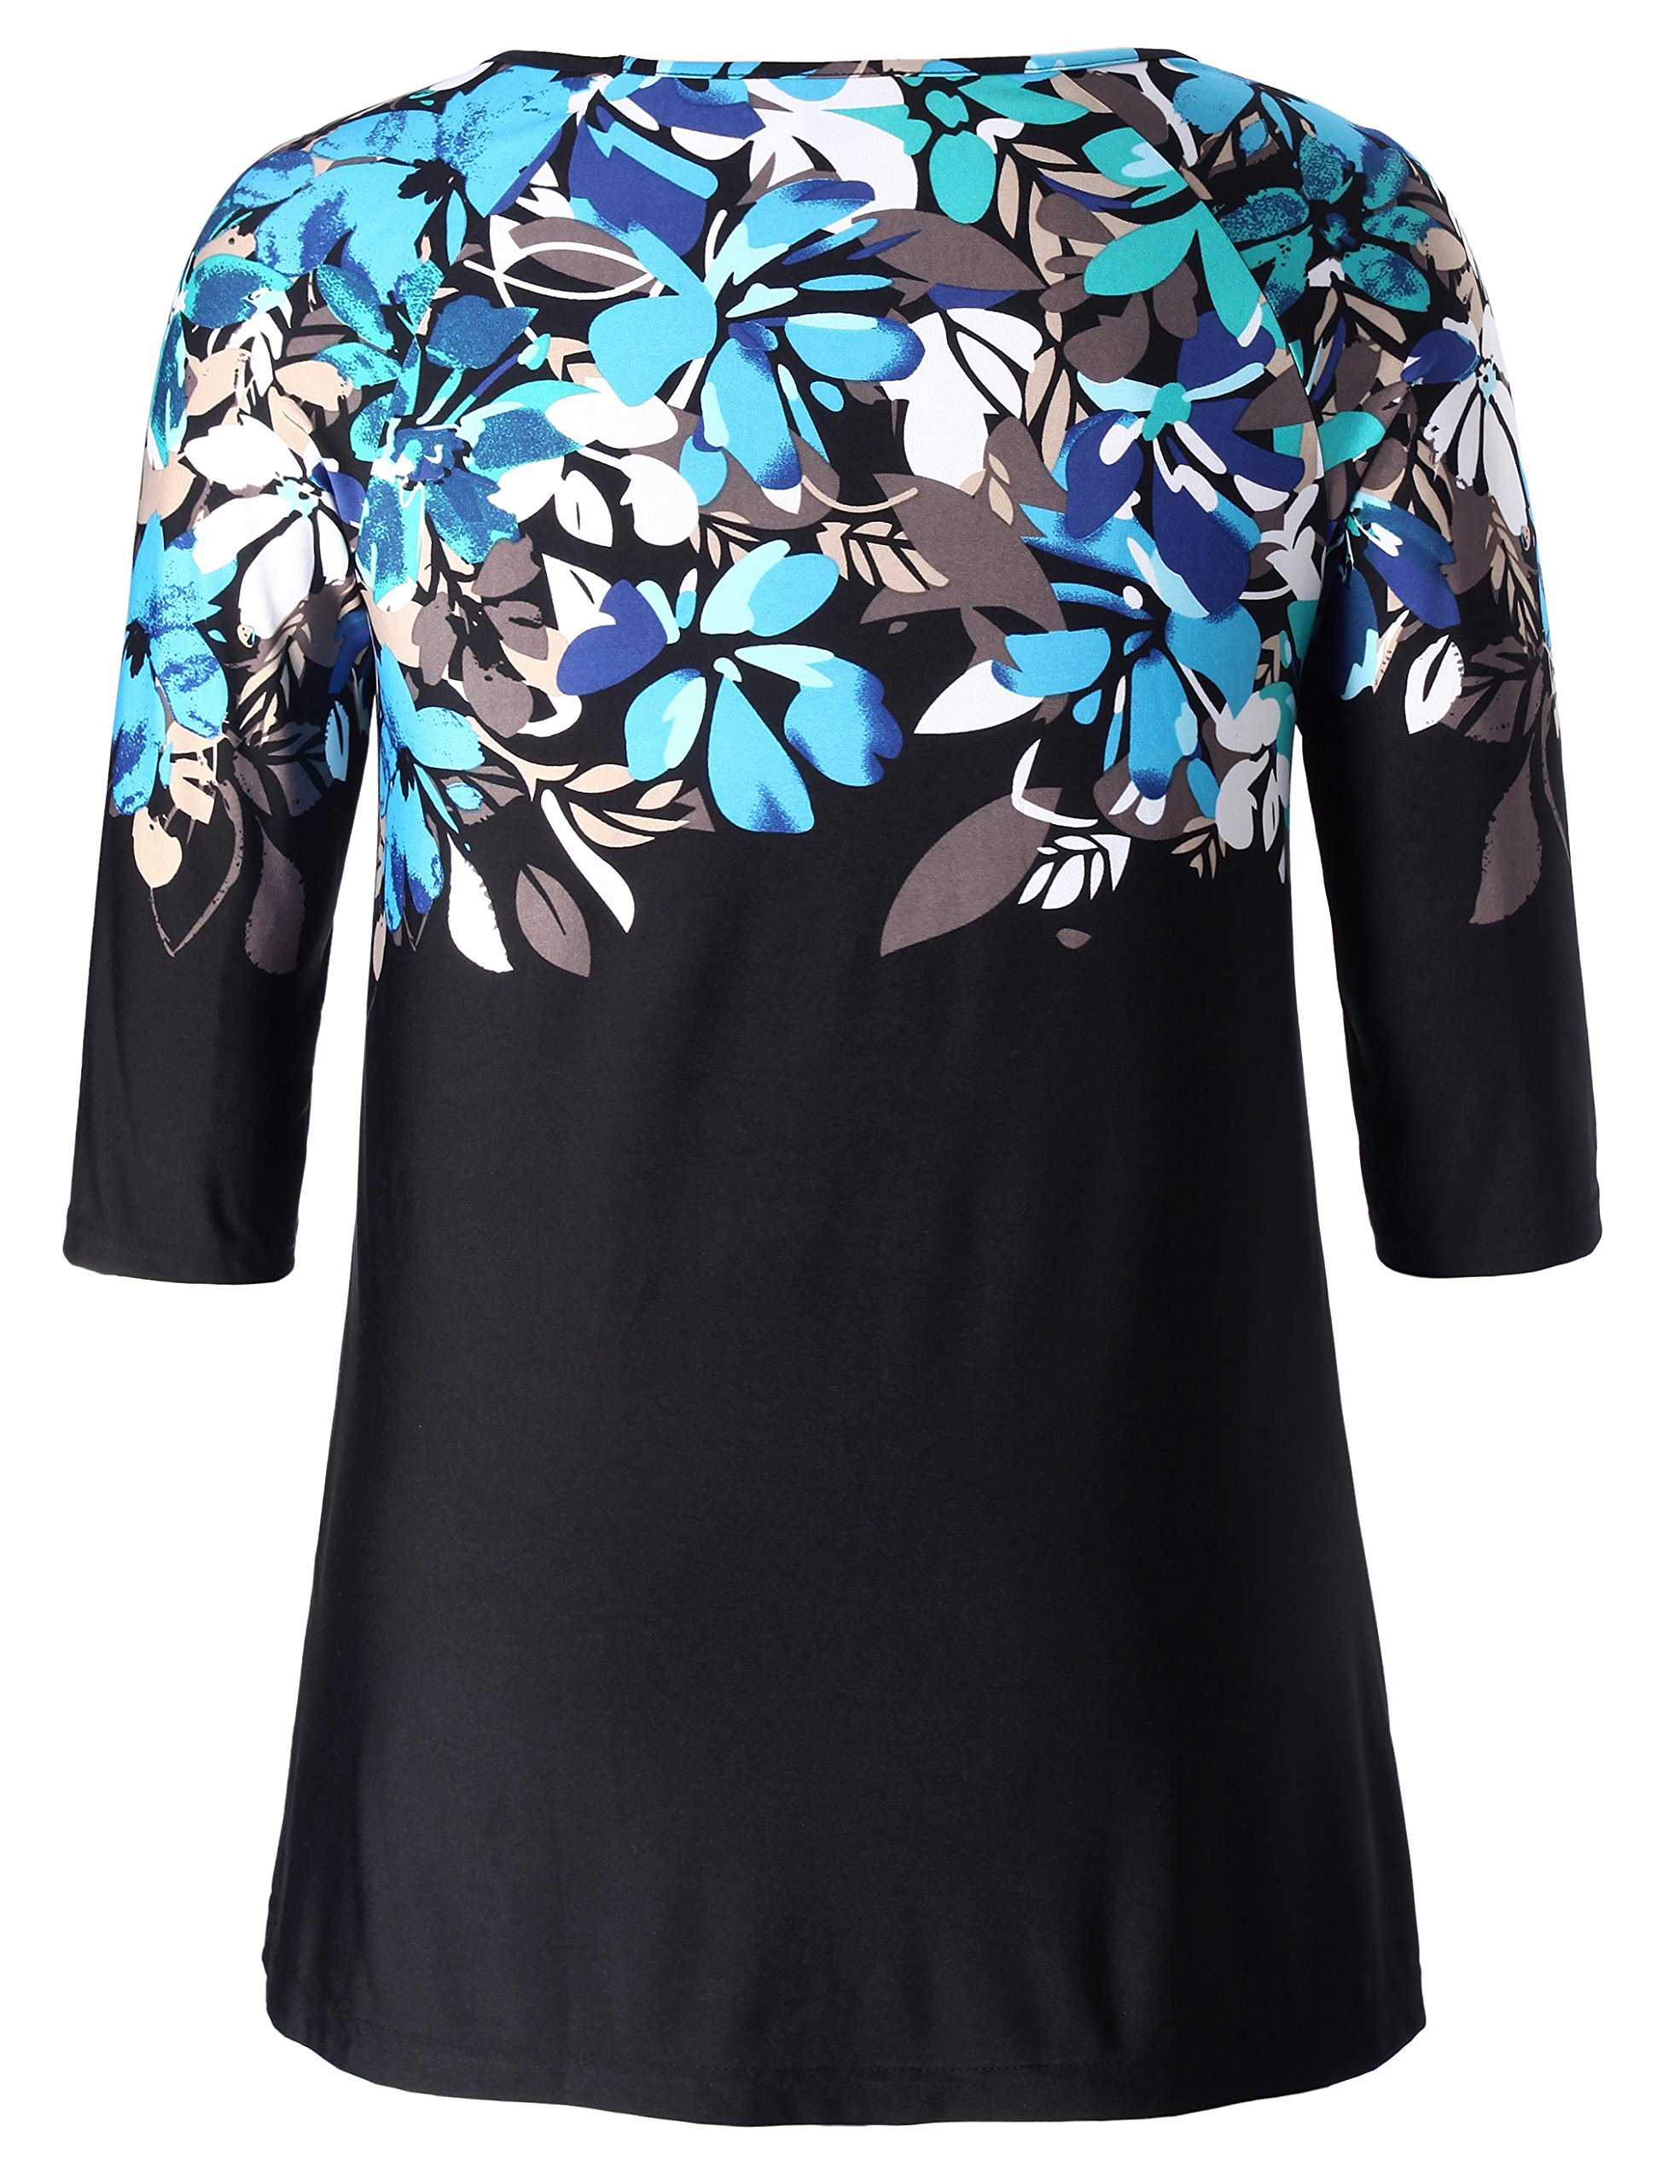 Chicwe Women's Plus Size Raglan Sleeves Floral Top - Casual and Work Tunic 2X by Chicwe (Image #2)